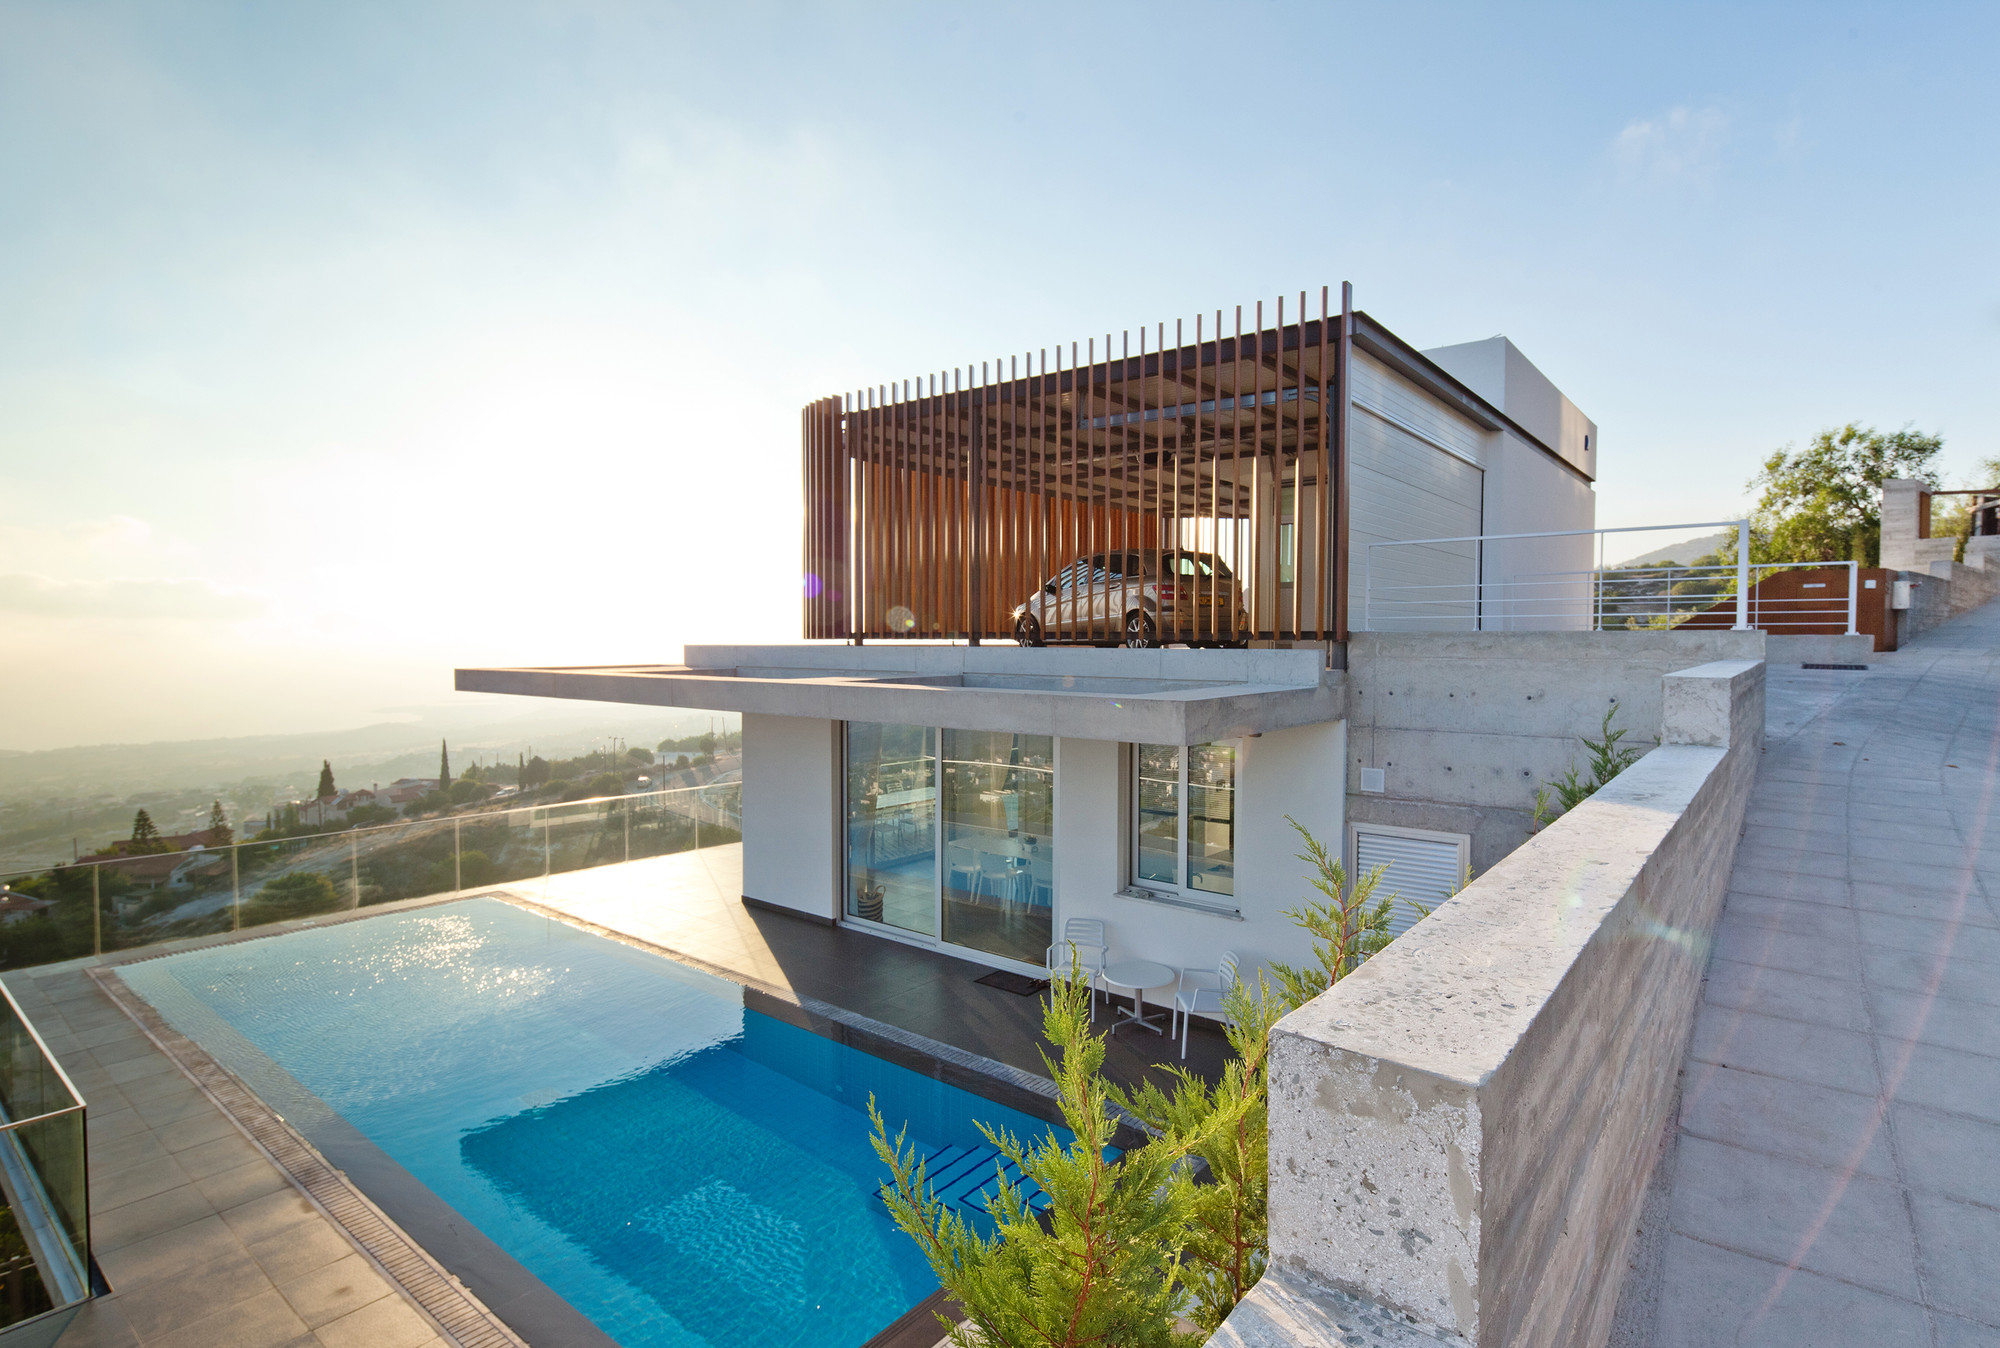 Prodromos and Desi Residence  / Vardastudio Architects & Designers , © Creative Photo Room